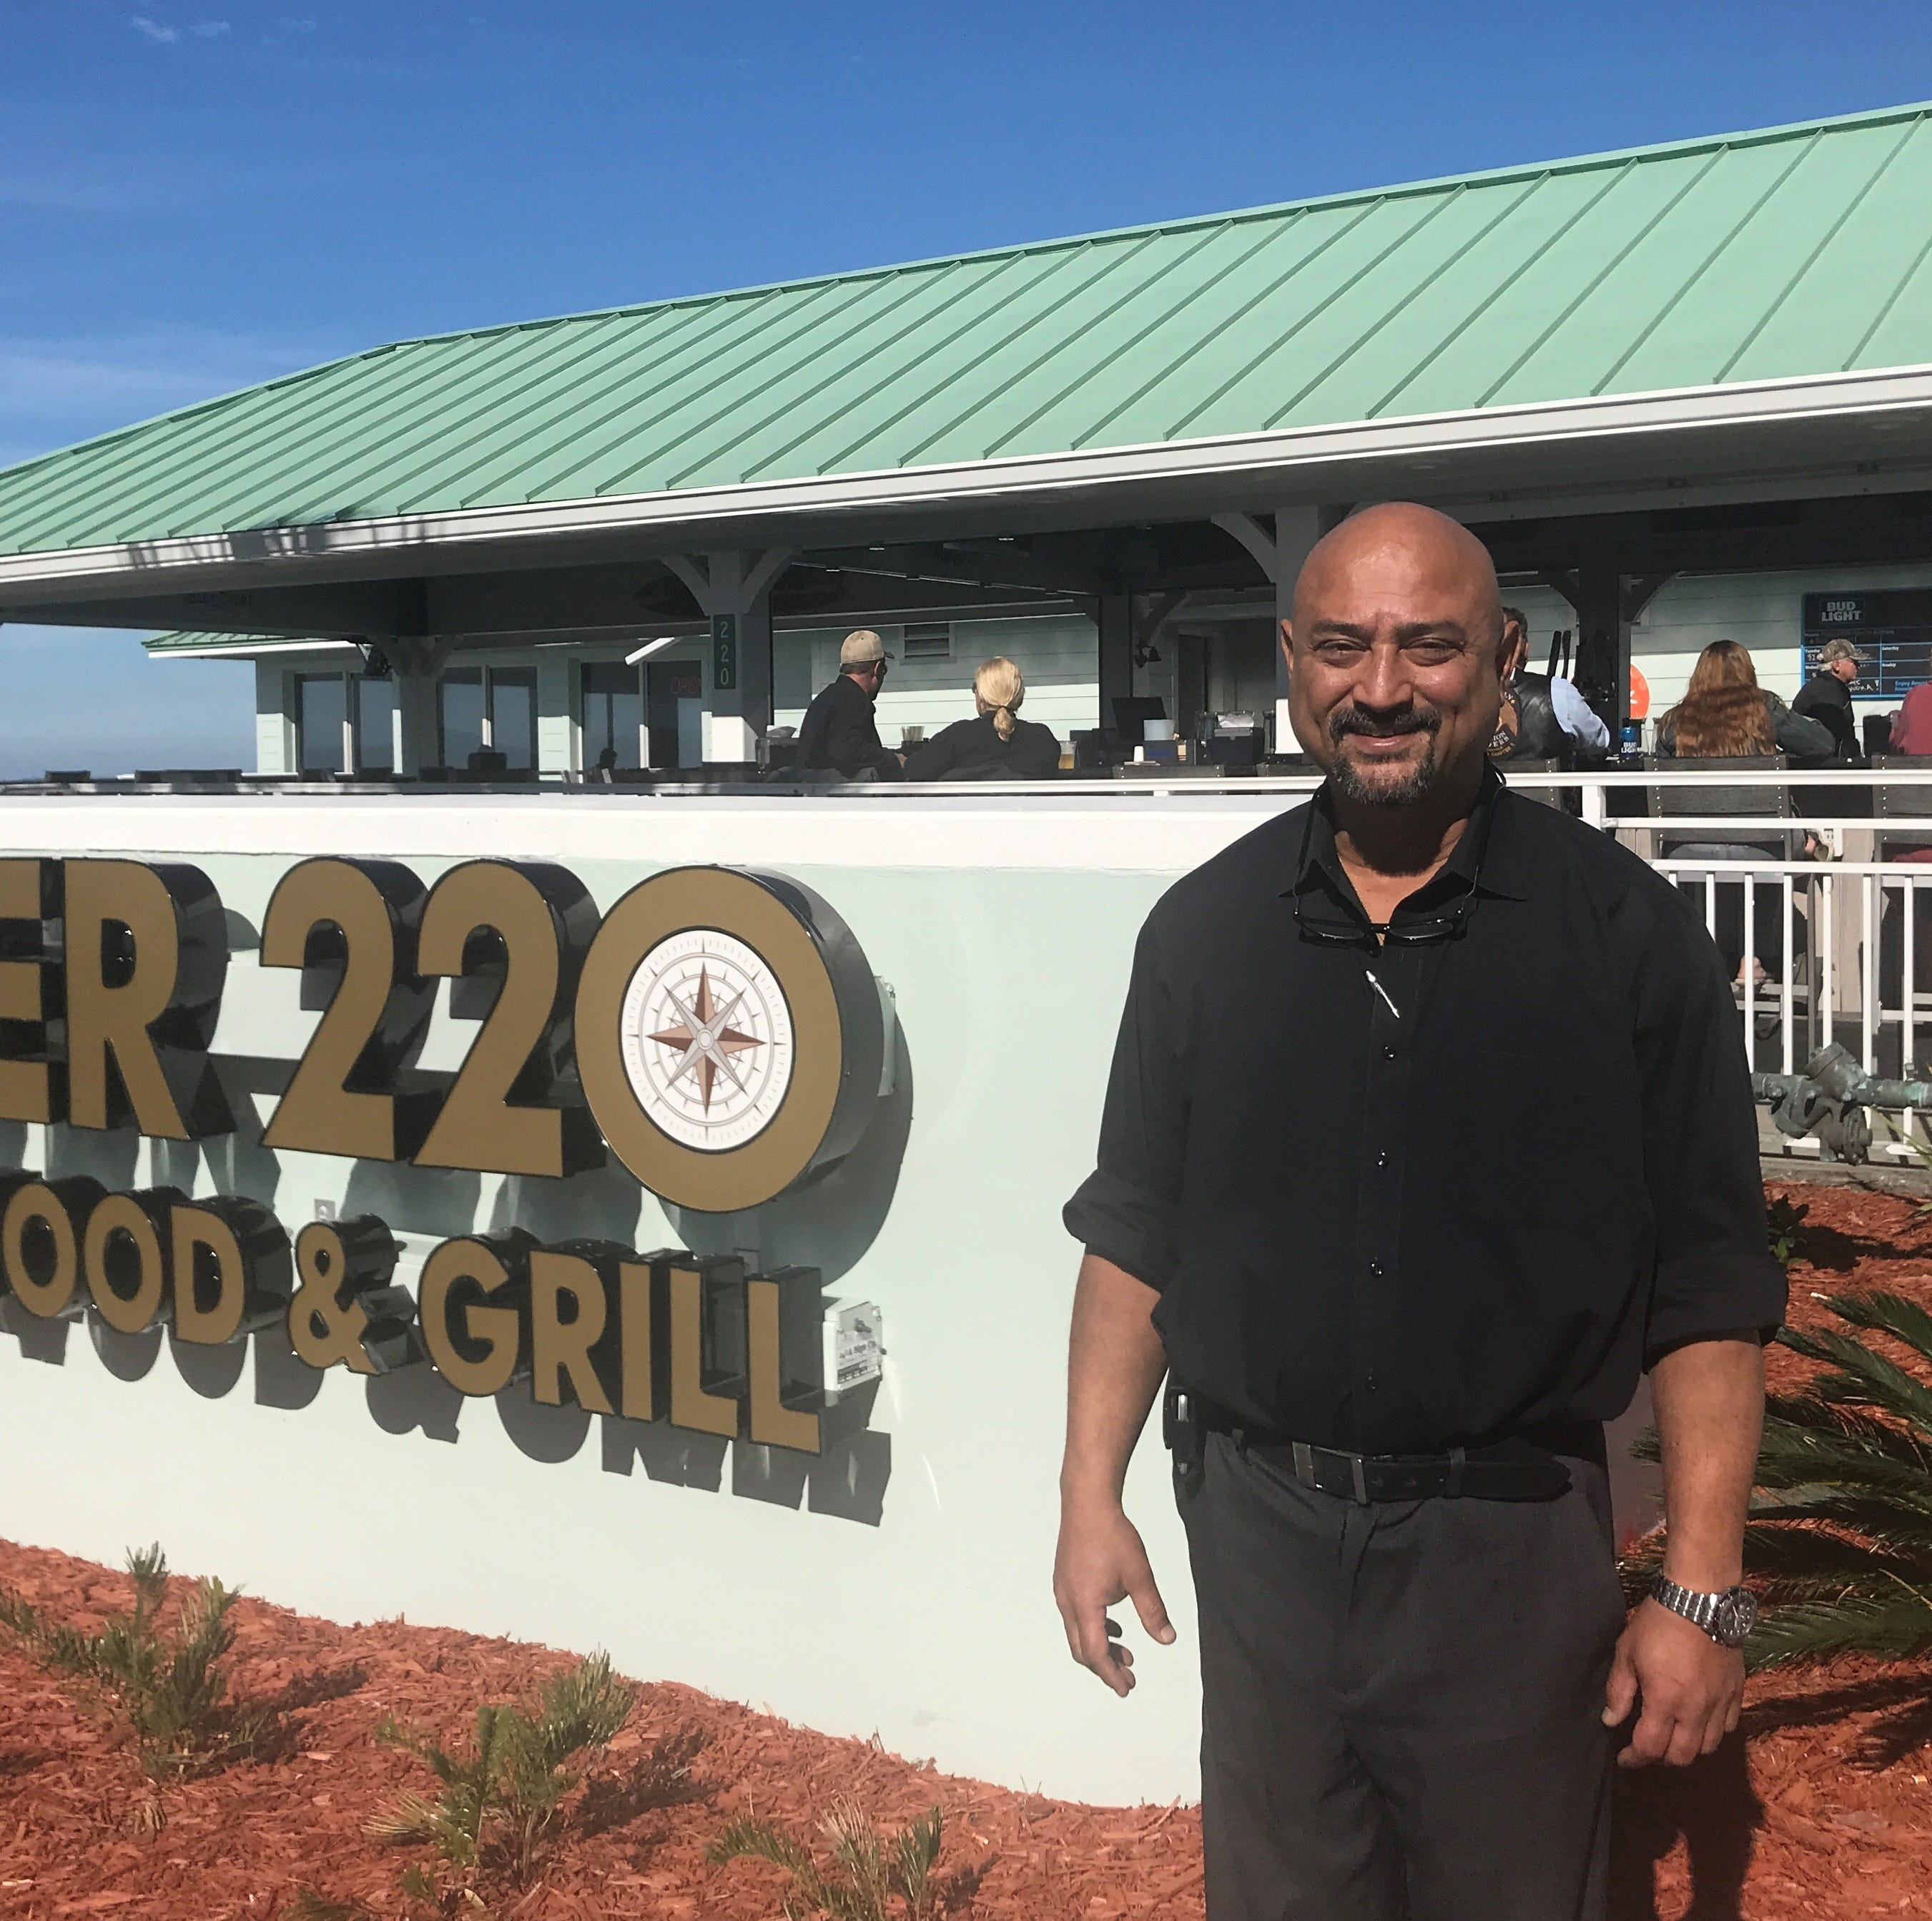 Pier 220 opens at foot of Brewer Bridge in Titusville, offers panoramic views